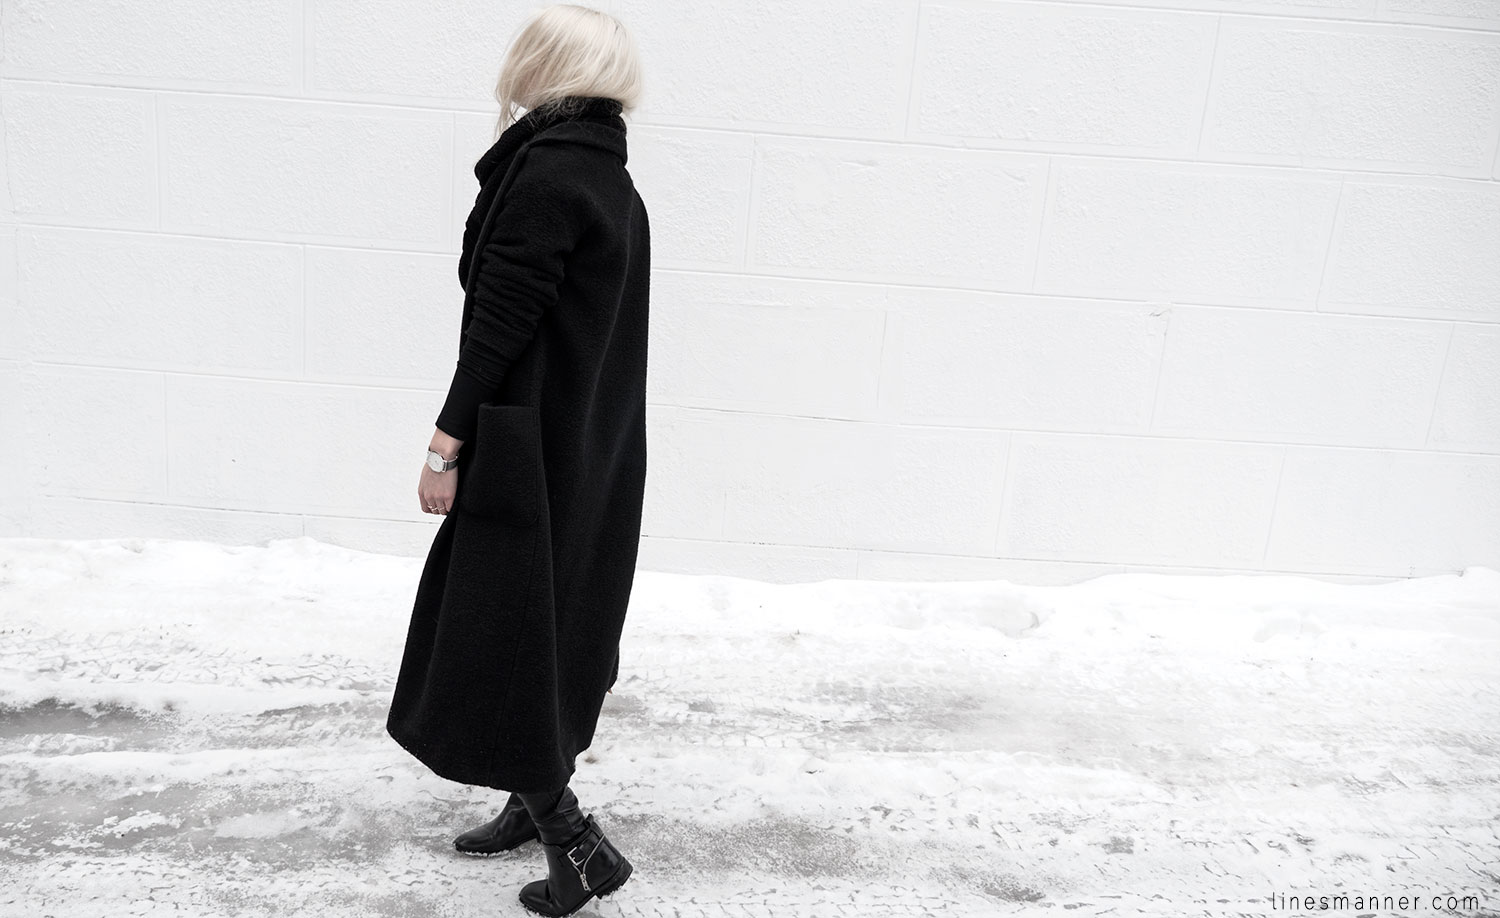 Lines-Manner-All_black_everything-monochrome-essentials-oversize-fit-textures-minimal-details-basics-staples-kayering-bundled-enveloped-silver-leather-19